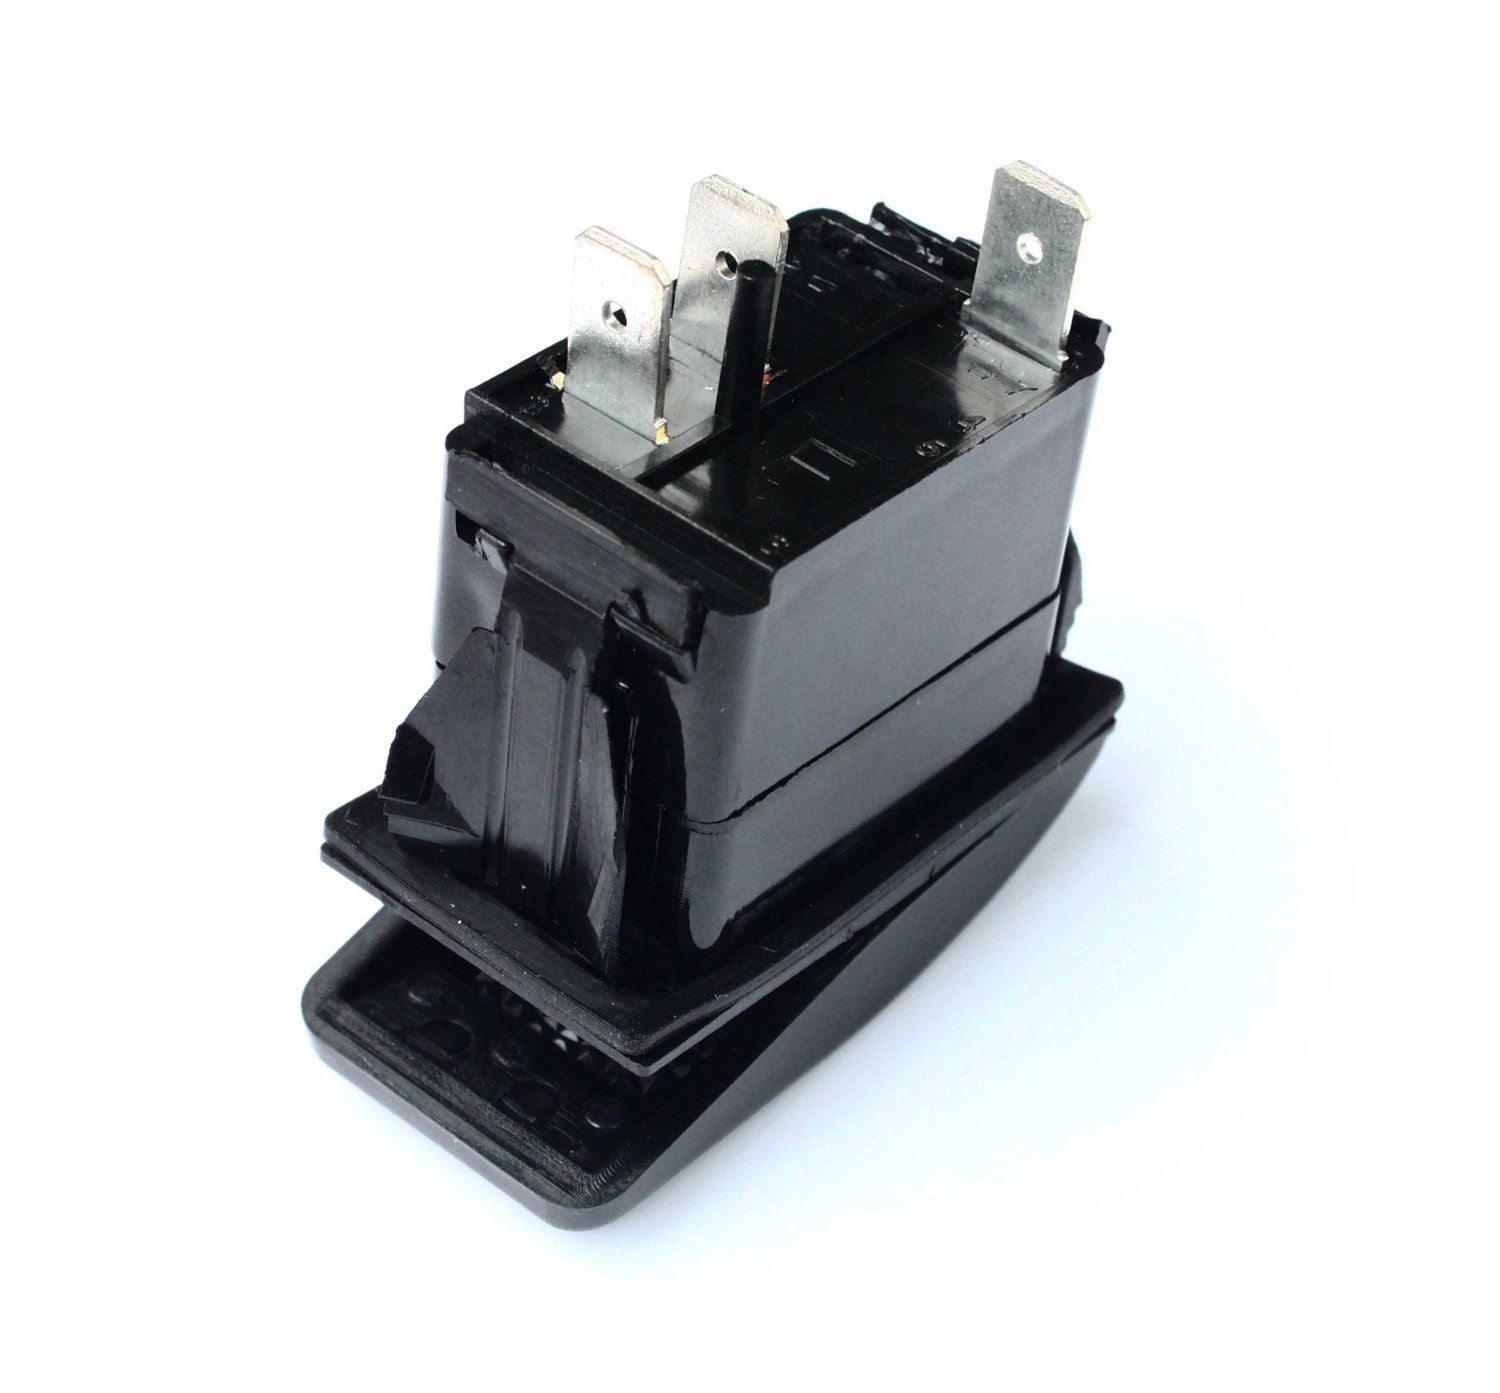 20 Amp Red Light Rocker Switch Kit Dash 3pin 12v All Contura Ii Switches Are Rated At 20amps Push Top Of Sr1001blpfba Universal Automotive